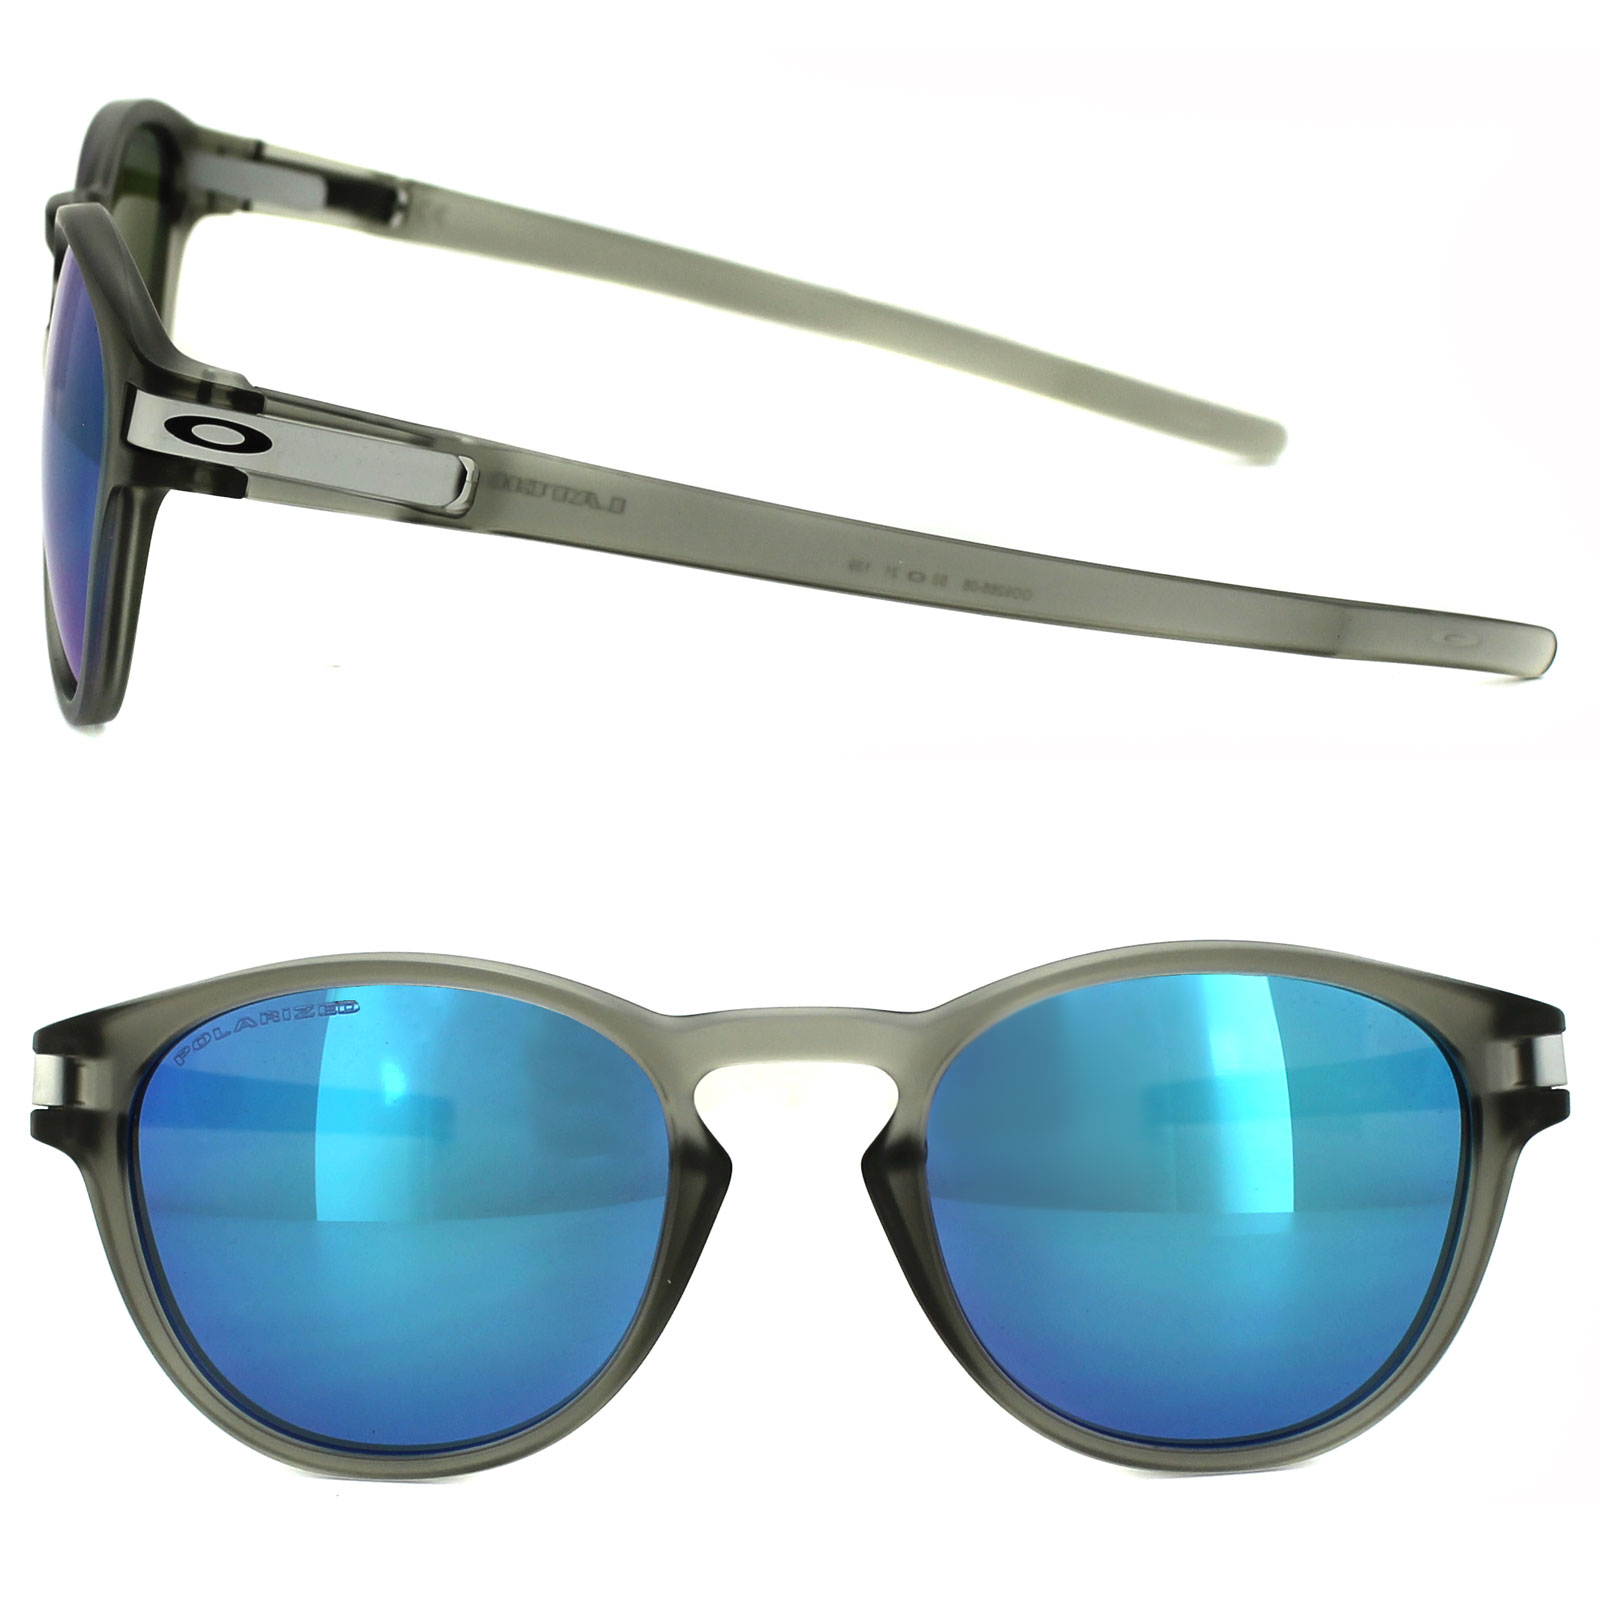 discount sunglasses oakley 266n  Oakley Latch Sunglasses Thumbnail 1 Oakley Latch Sunglasses Thumbnail 2